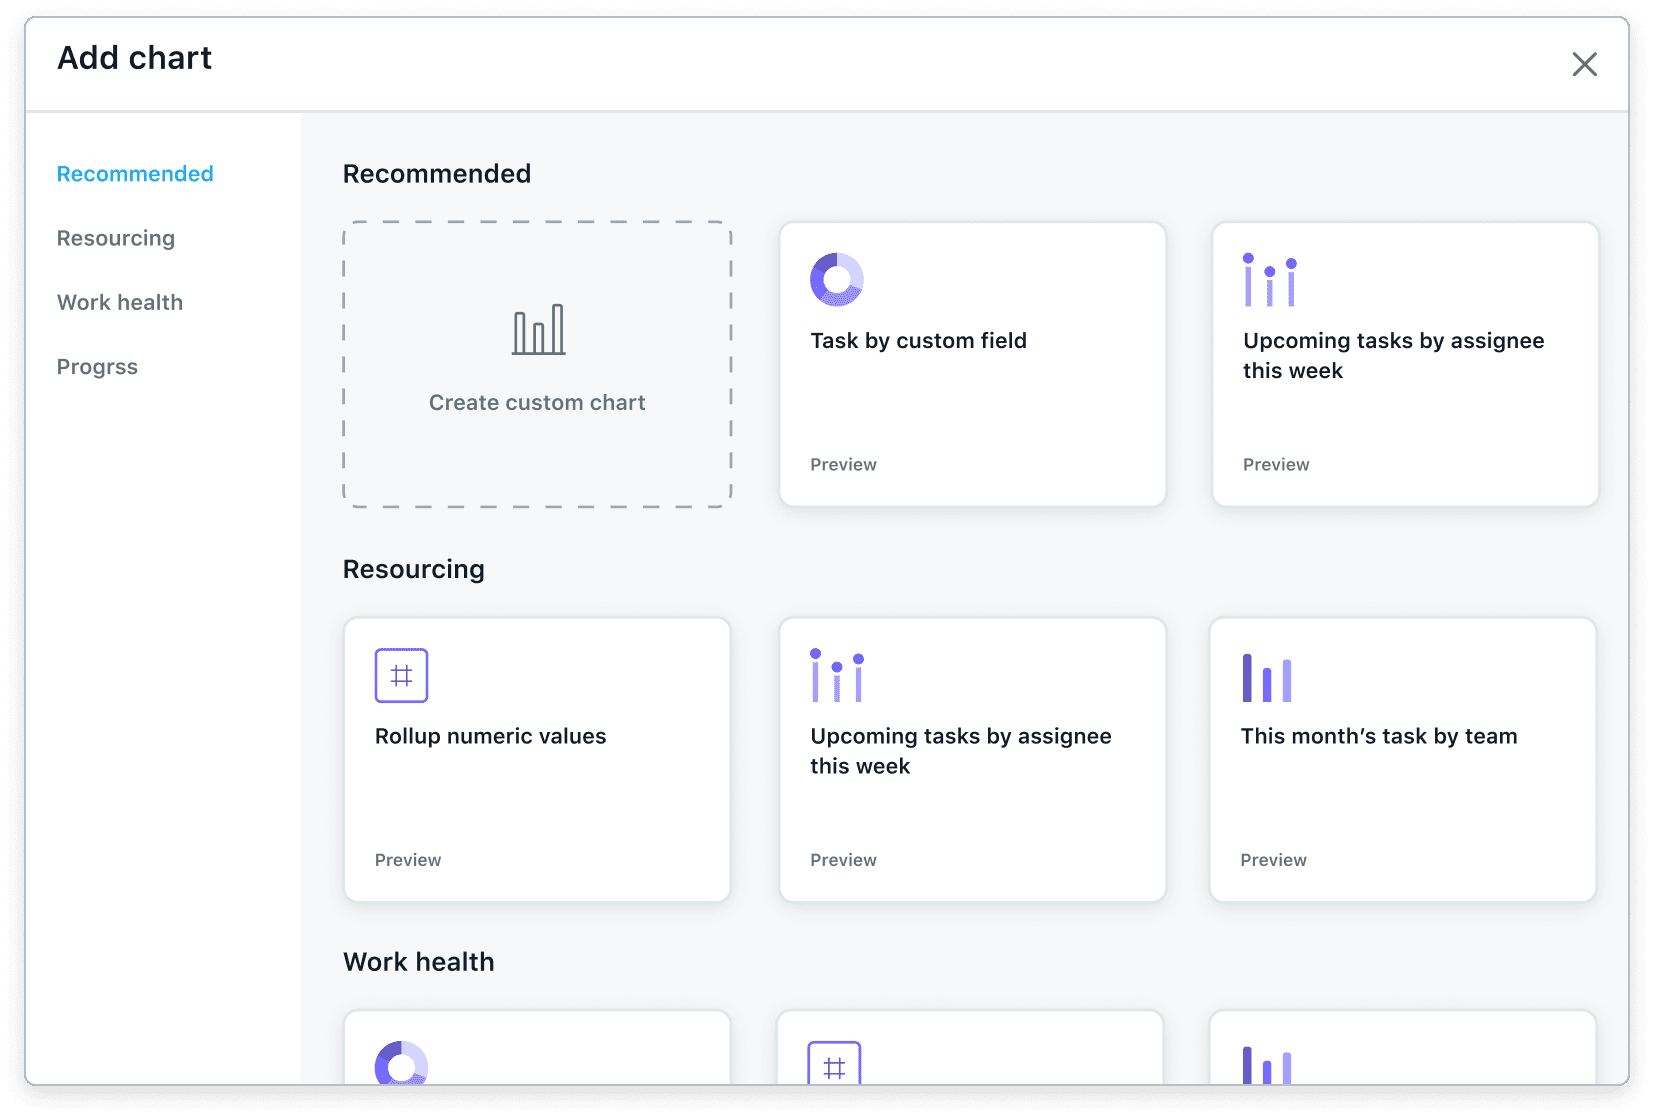 [Reporting] Universal reporting out-of-the-box templates add chart option chart picker in Asana